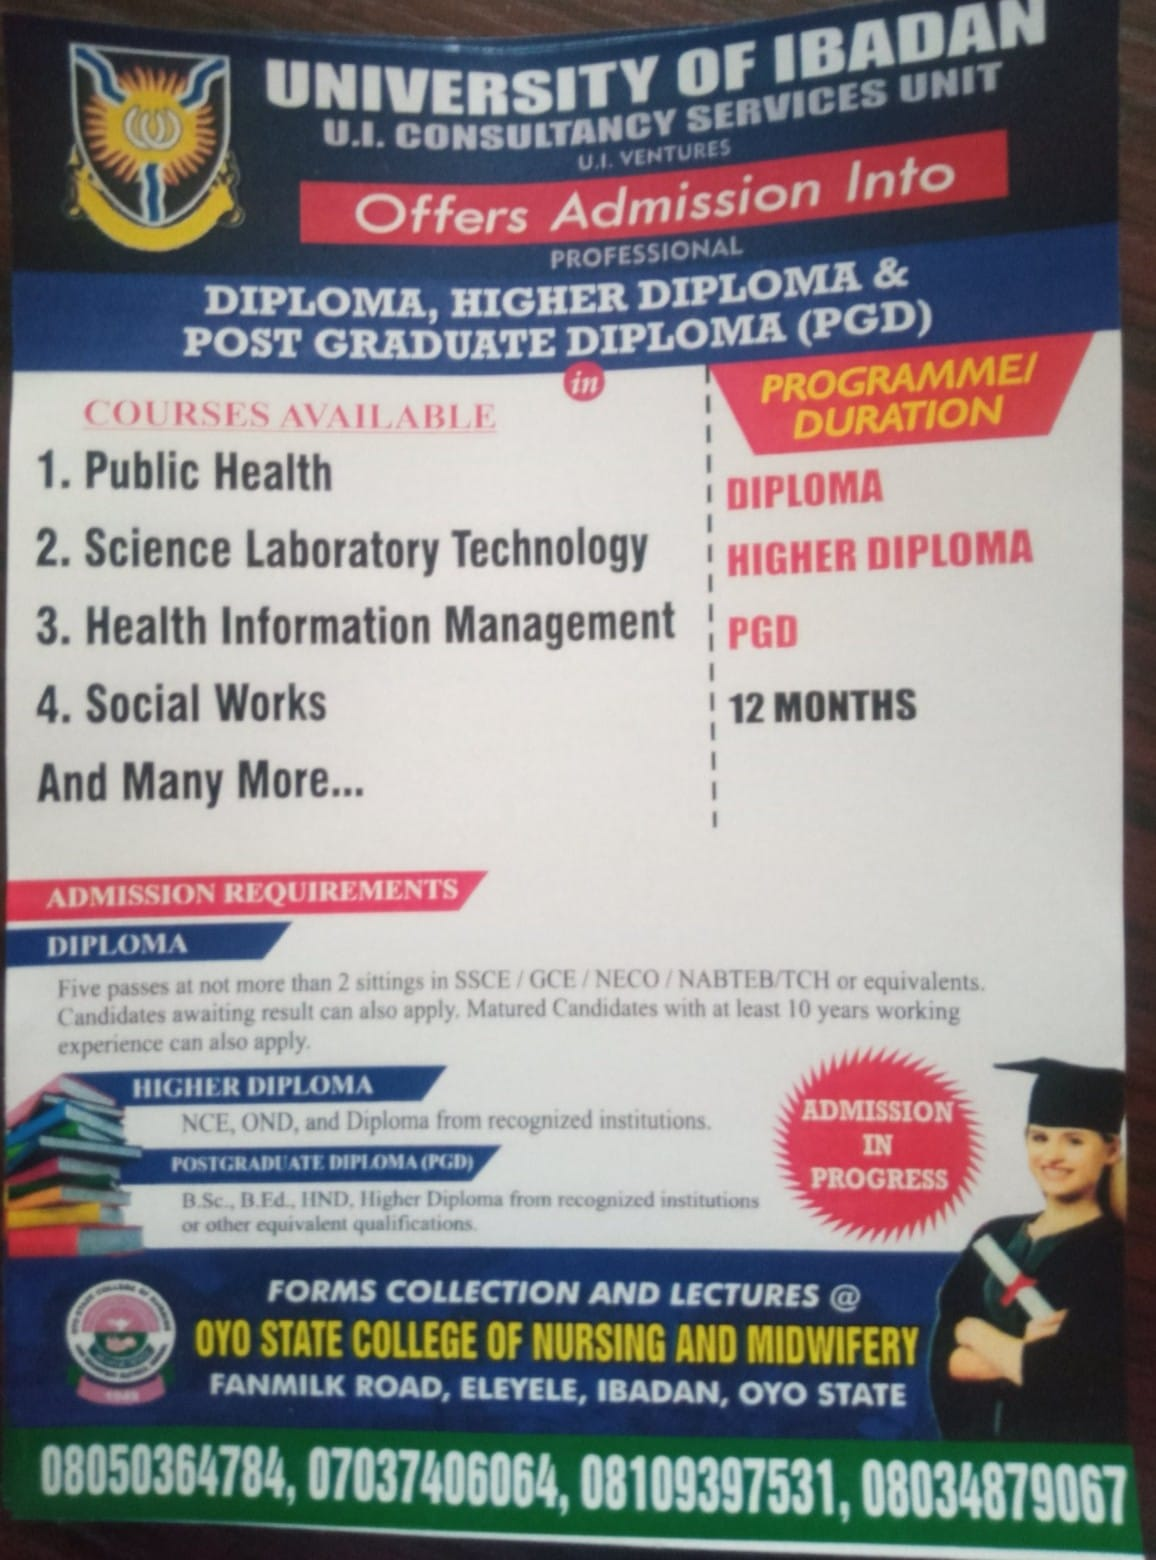 UI Consultancy Services Diploma, Higher Diploma & PGD Forms